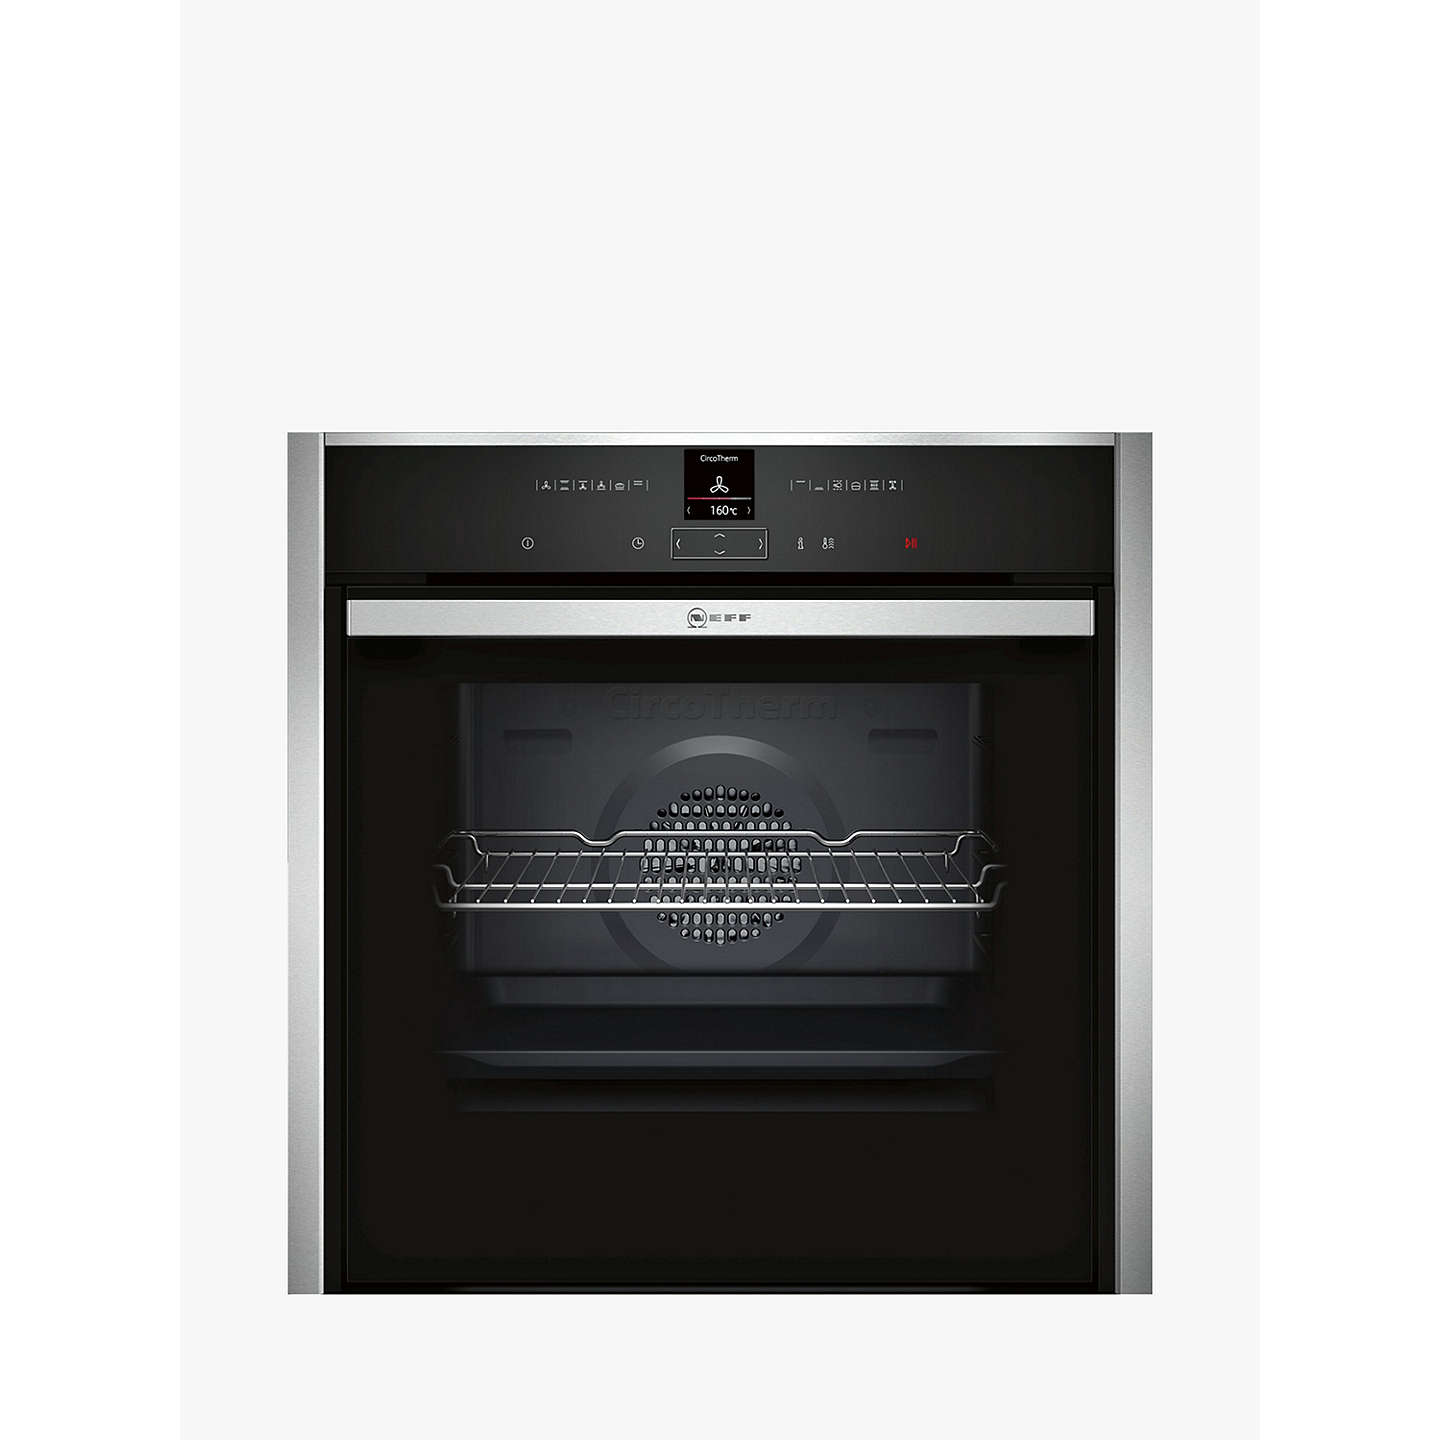 Neff B57 Cr22 N0 B Pyrolytic Slide And Hide Single Electric Oven, Stainless Steel by Neff